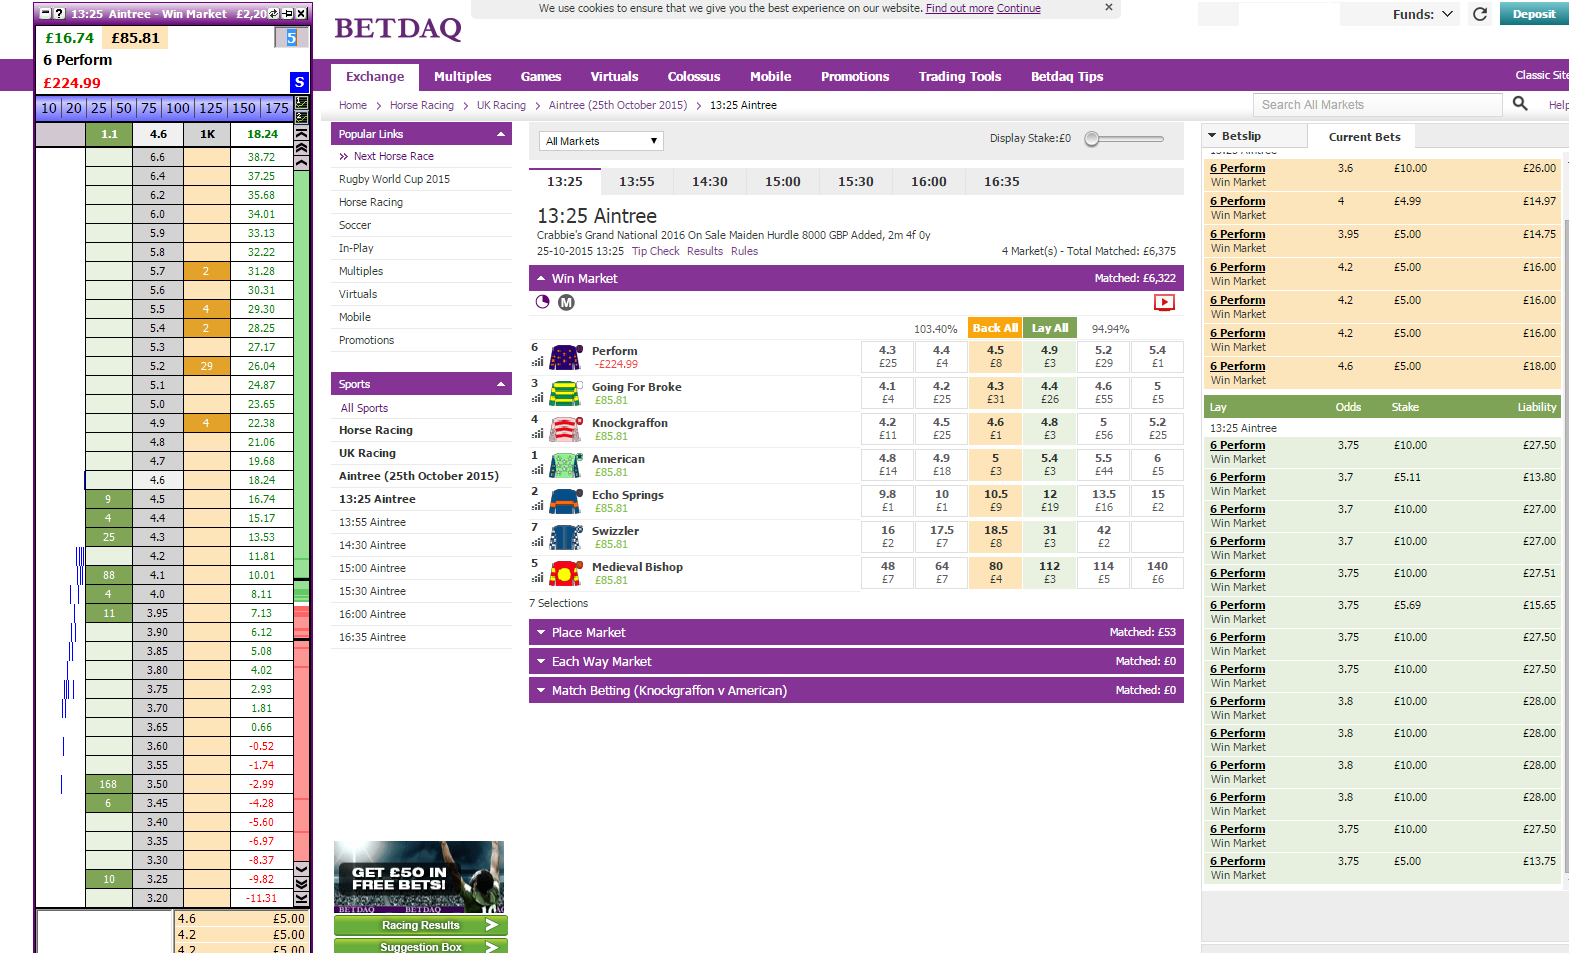 Betting assistant for betdaq commission martin johnson england rugby coach betting